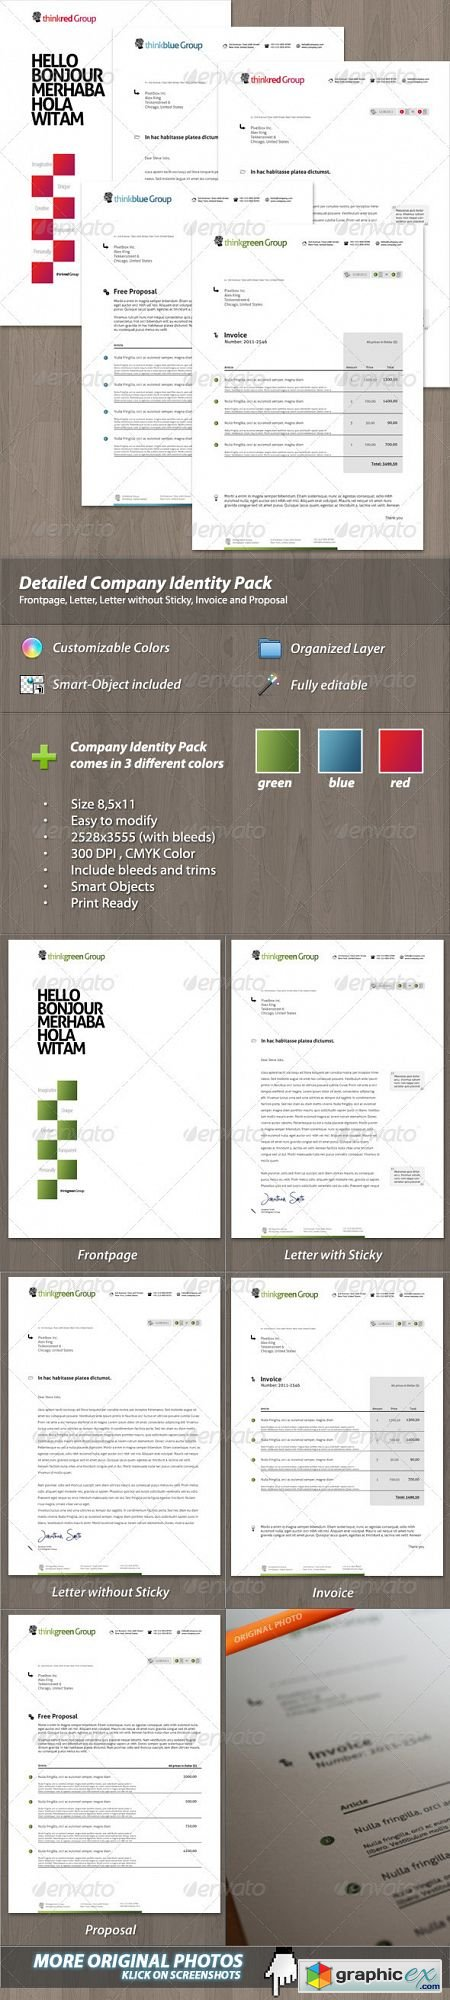 Modern Company Identity Pack for your Business